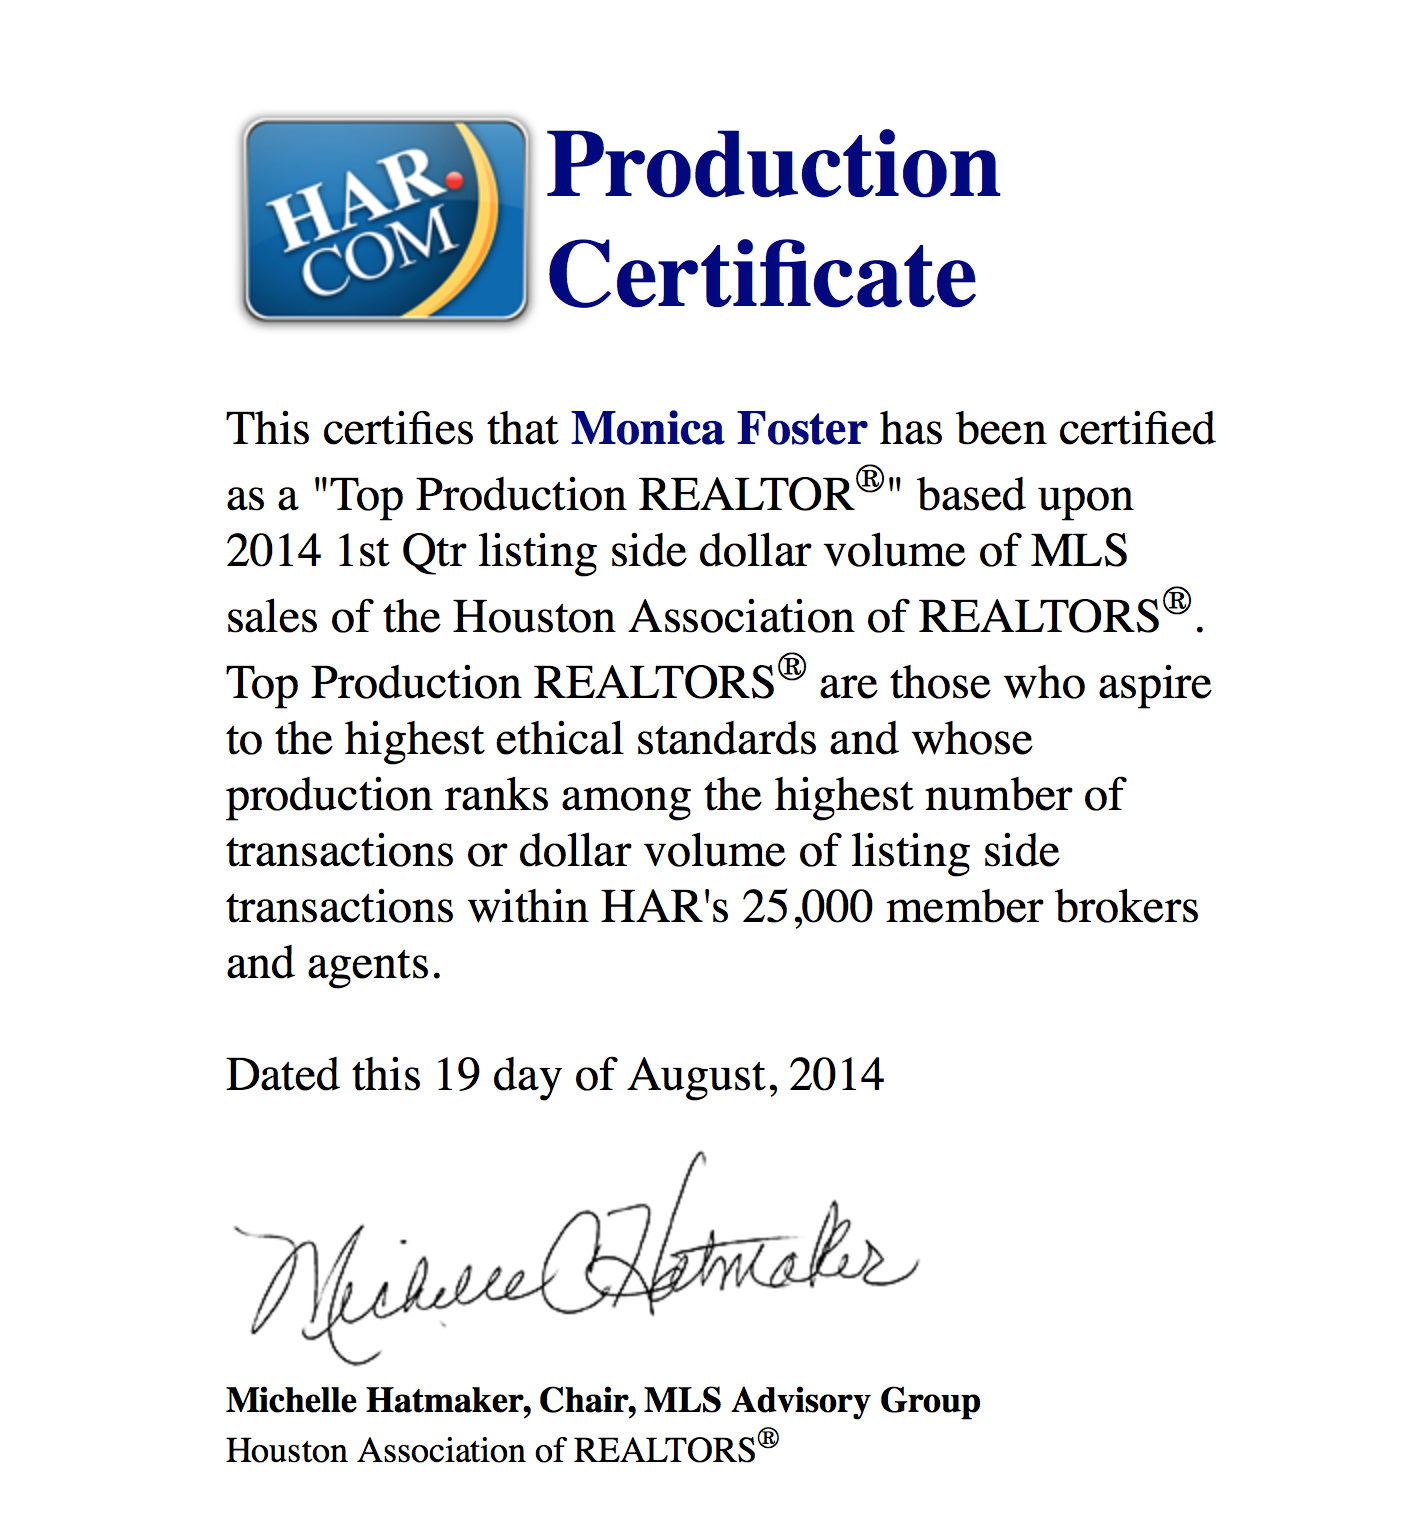 HAR Top Production 1st Qtr 2014 Listing Volume